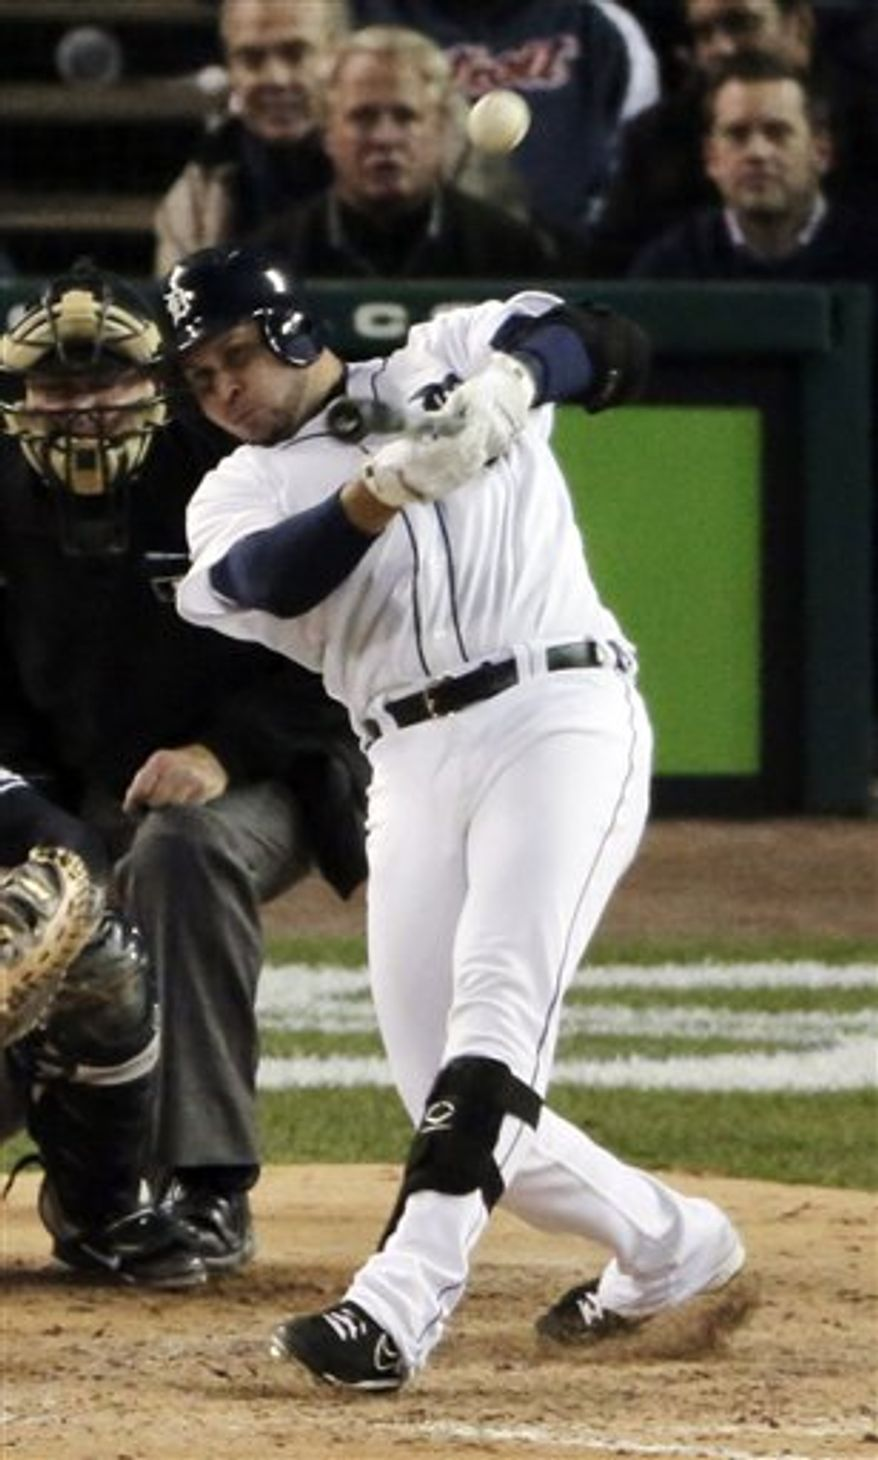 Detroit Tigers' Jhonny Peralta hits a home run in the eighth inning against the New York Yankees during Game 4 of the American League Championship Series Thursday, Oct. 18, 2012, in Detroit. The Tigers won 8-1 and move on to the World Series. (AP Photo/Charlie Riedel)